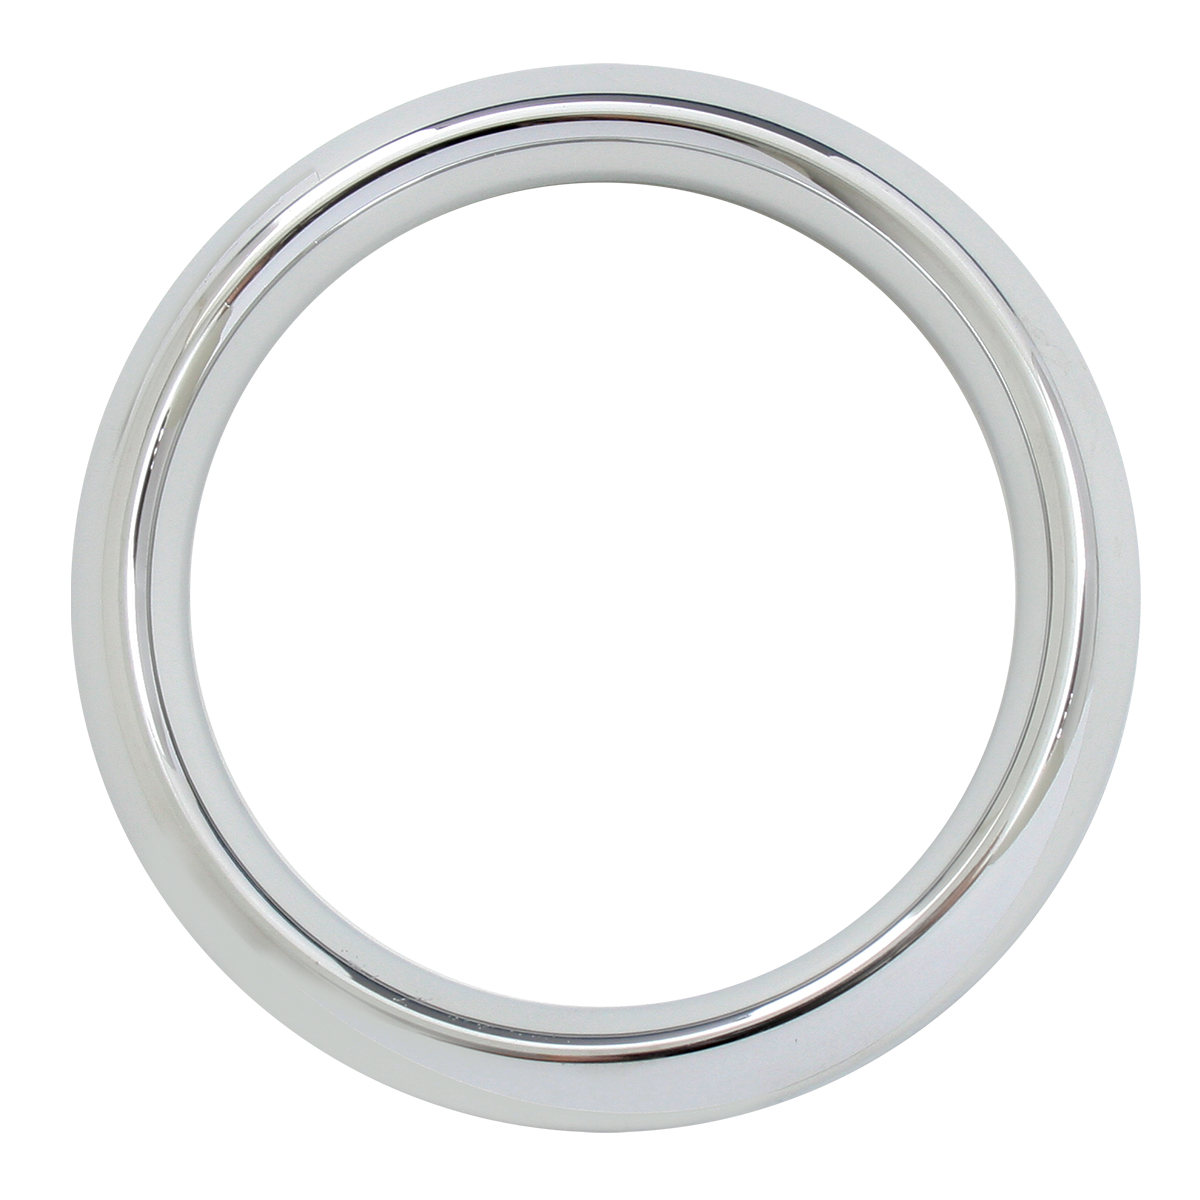 Chrome Plastic Gauge Cover for FL & Pete